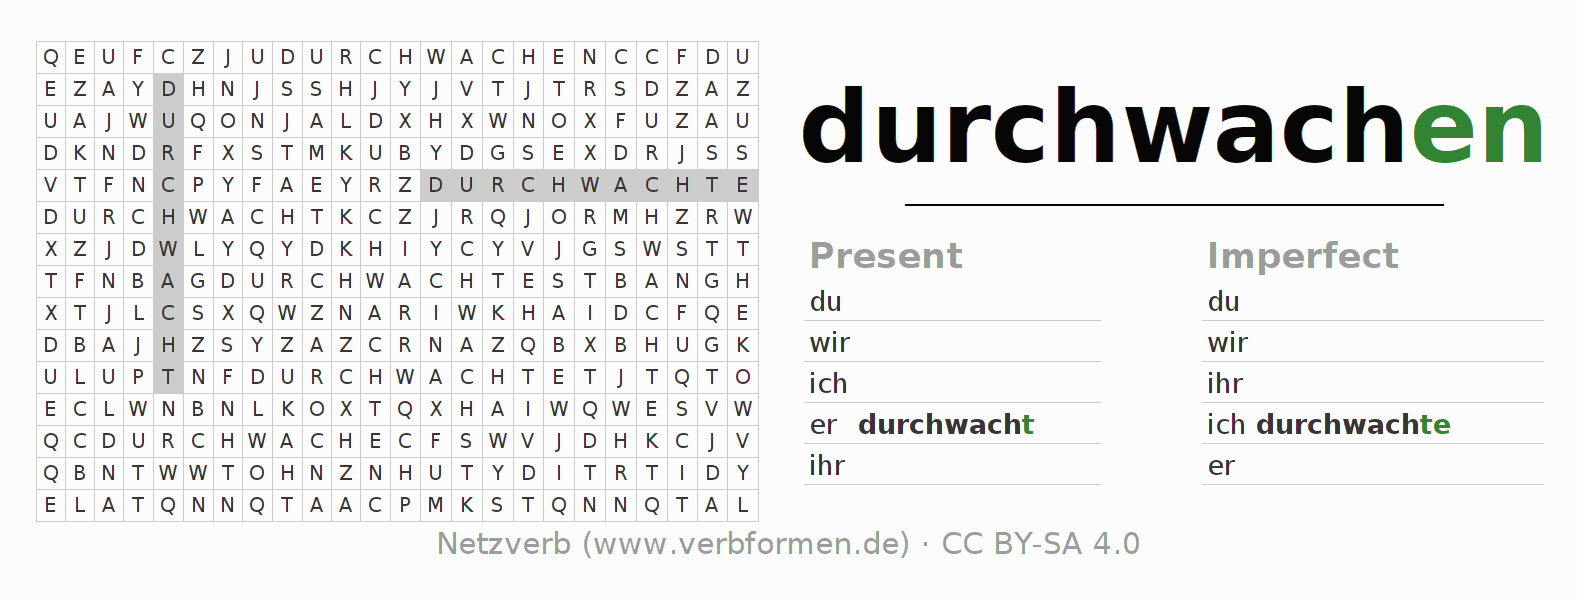 Word search puzzle for the conjugation of the verb durchwachen